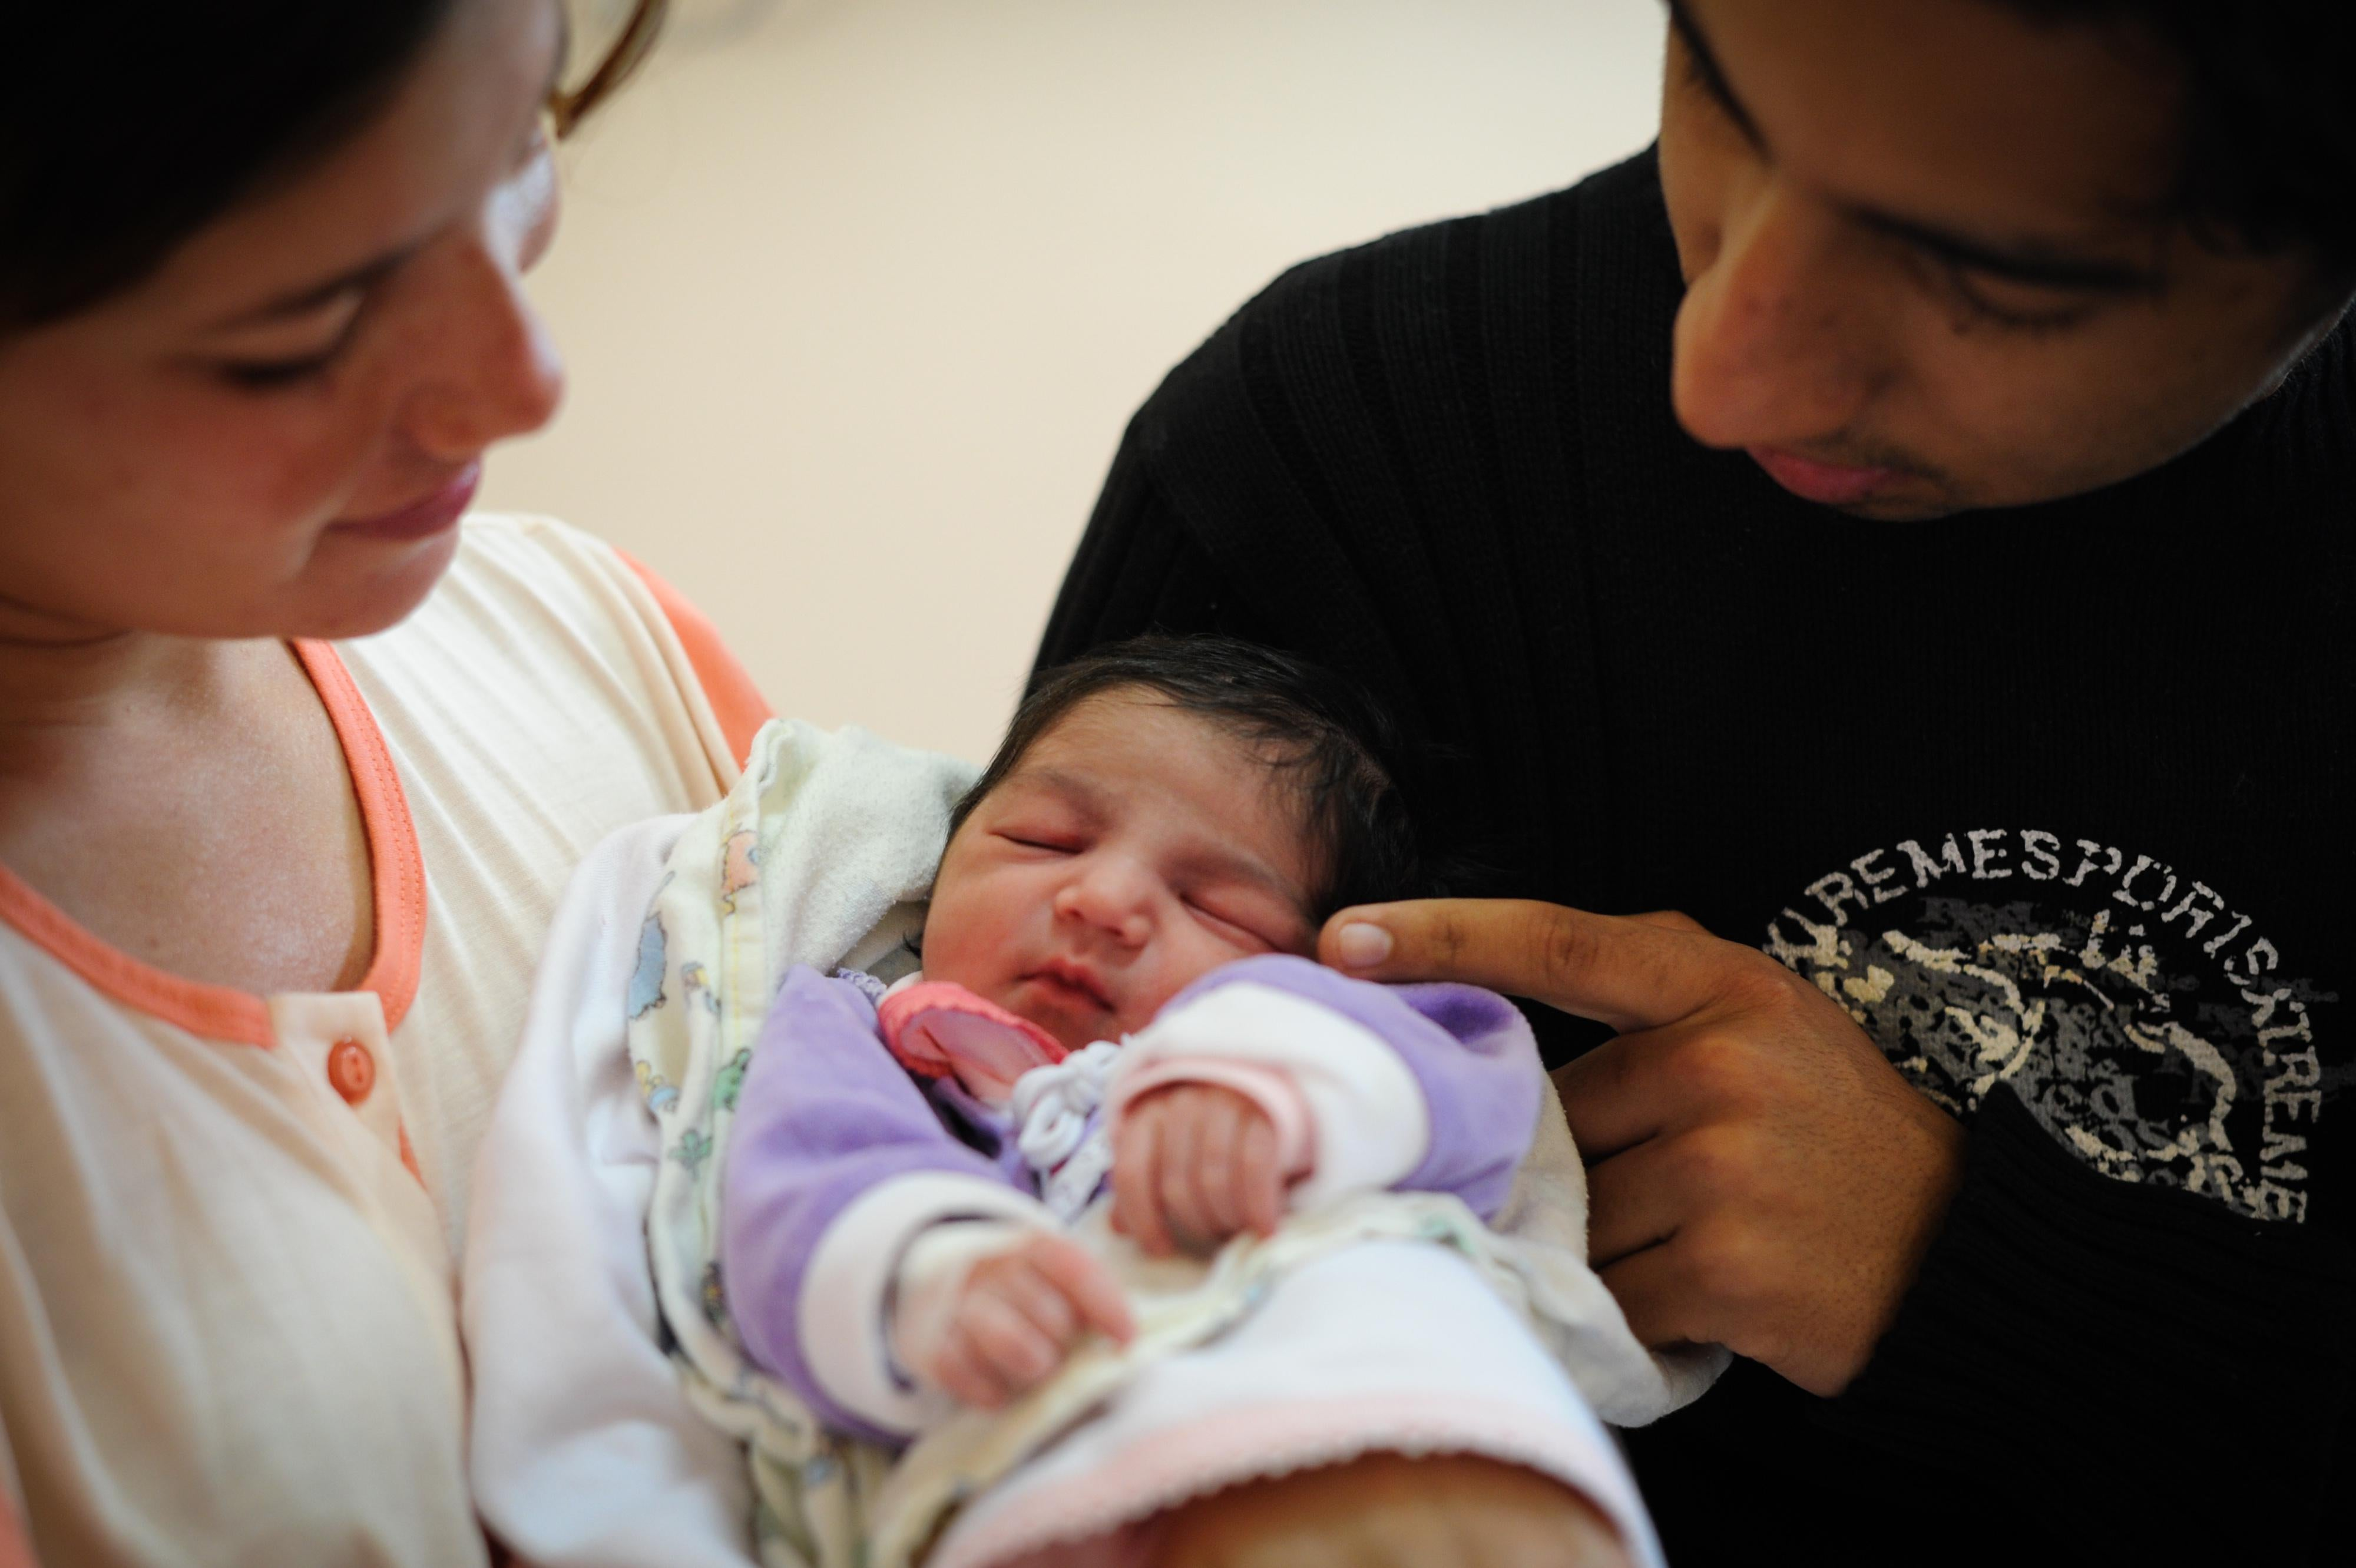 Brazilian baby, Letia Alves Ferreira, born on the day the world population reached over 7 bilion, sleeps at Amparo Maternal hospital in Sao Paulo, Brazil, on Ocotober 31, 2011.